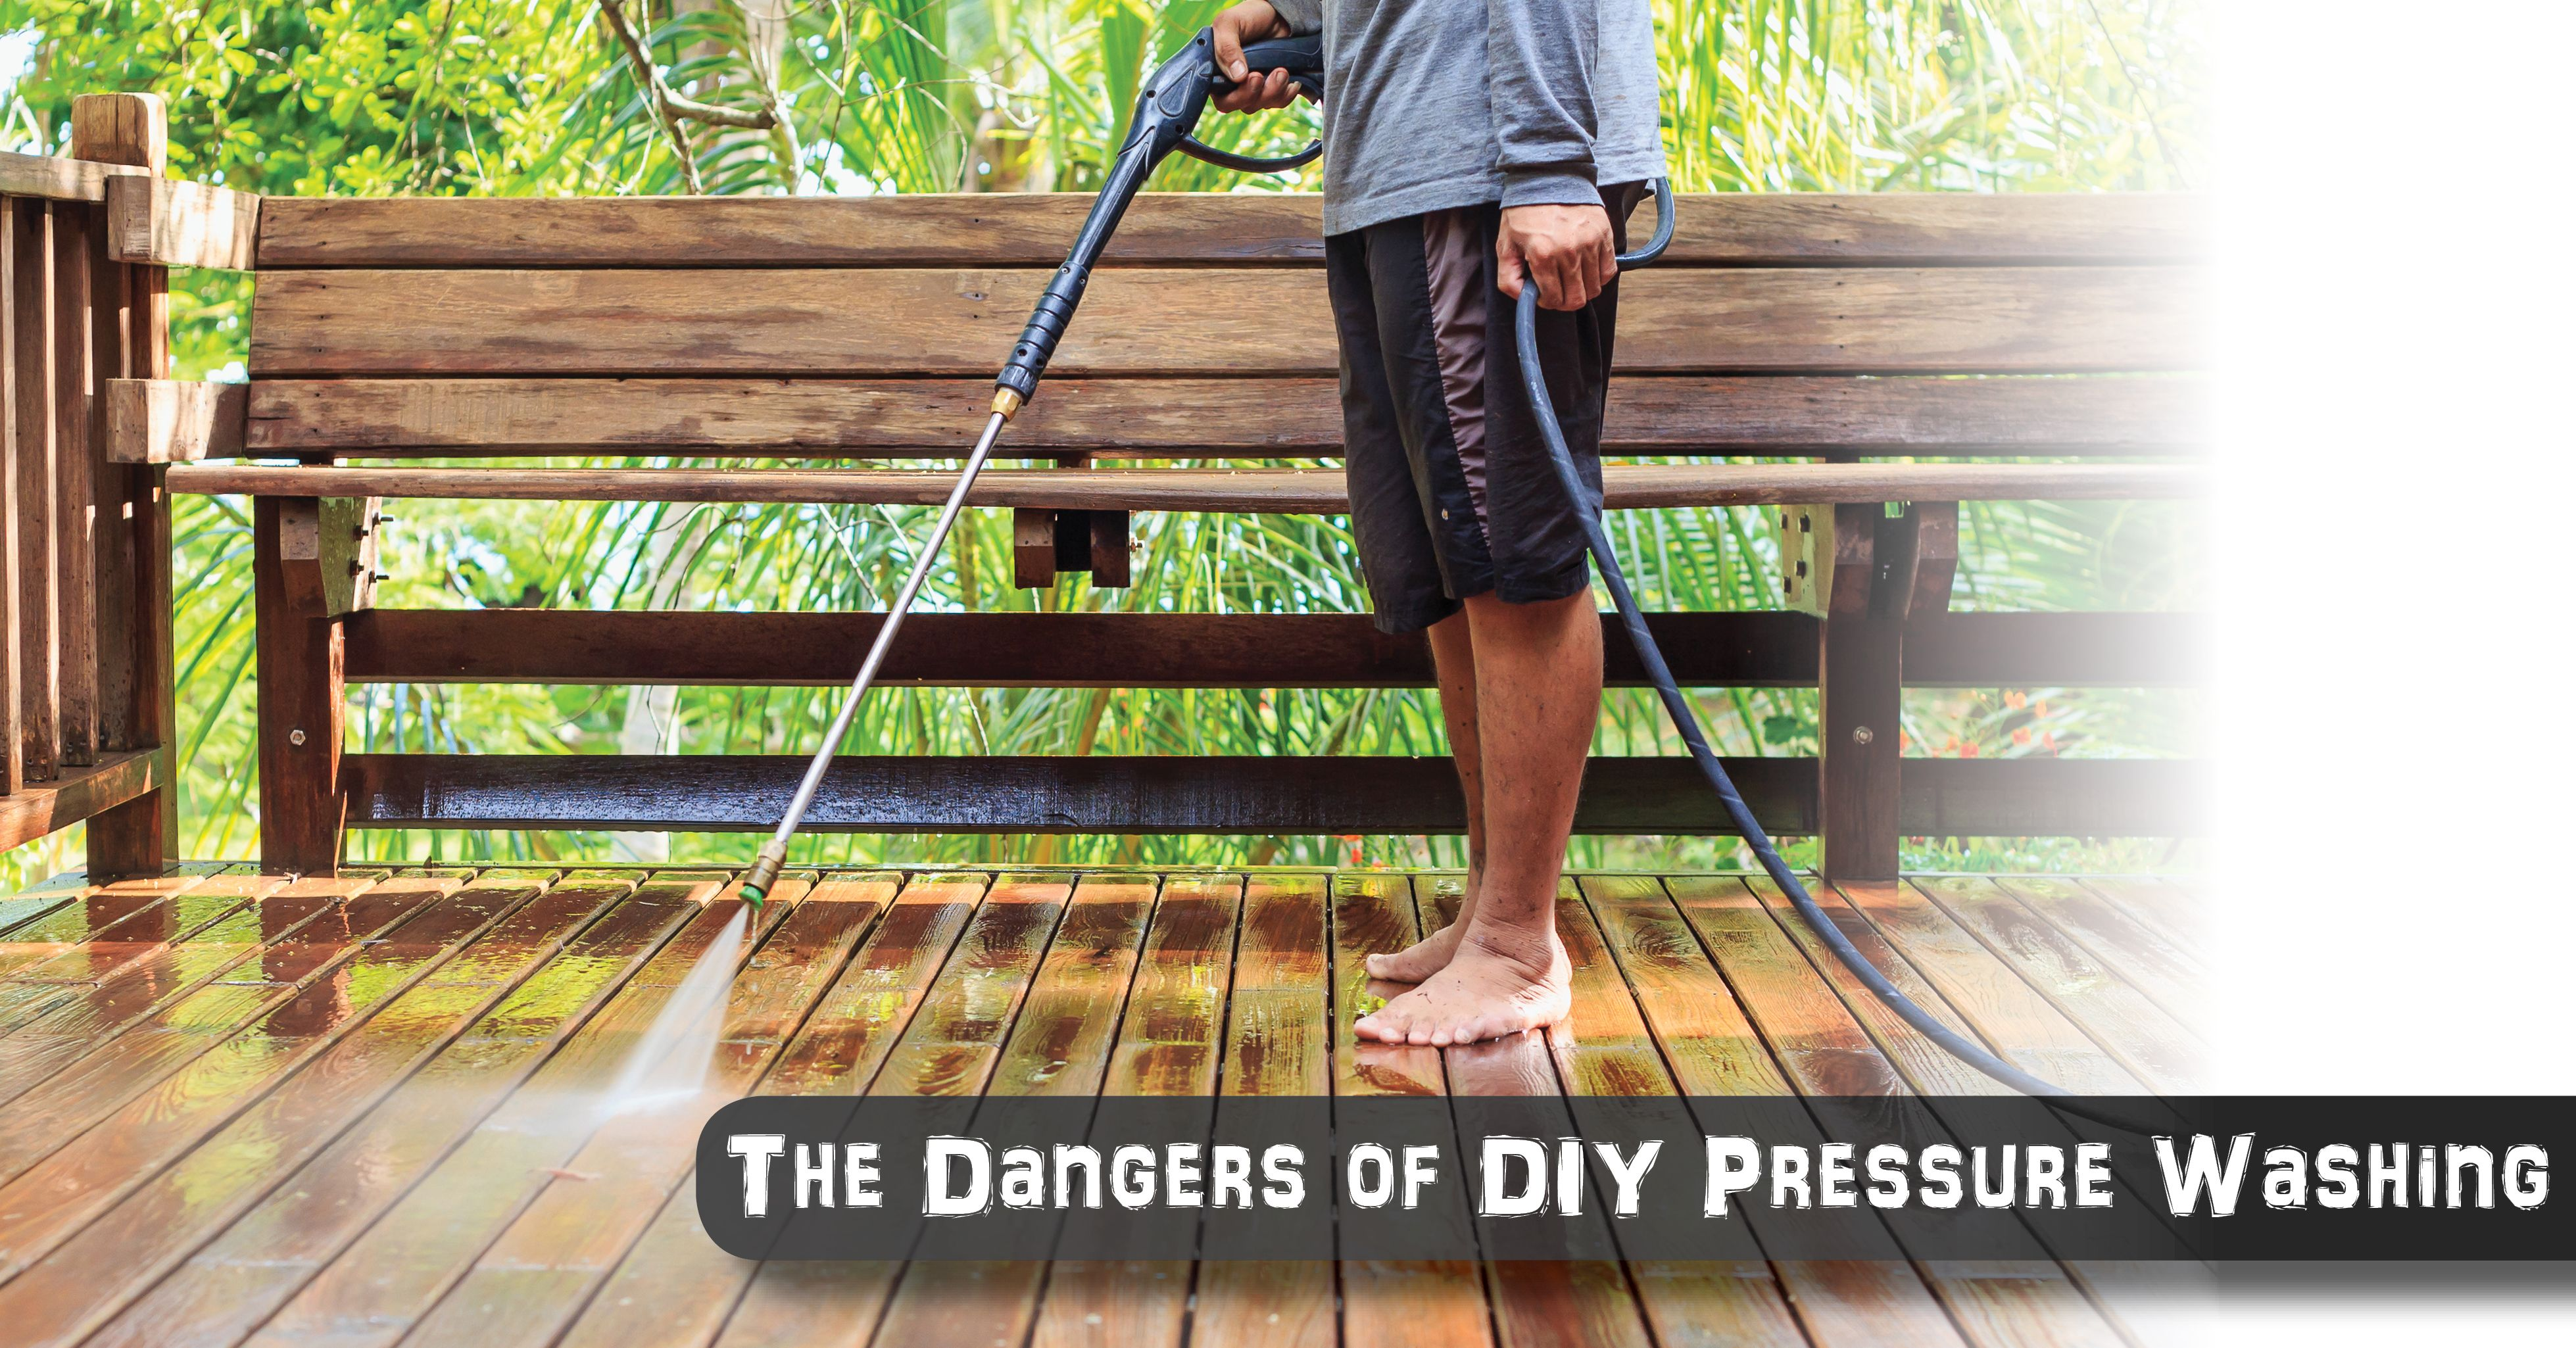 Diy Deck Cleaner The Dangers Of Diy Pressure Washing Pressure Washing